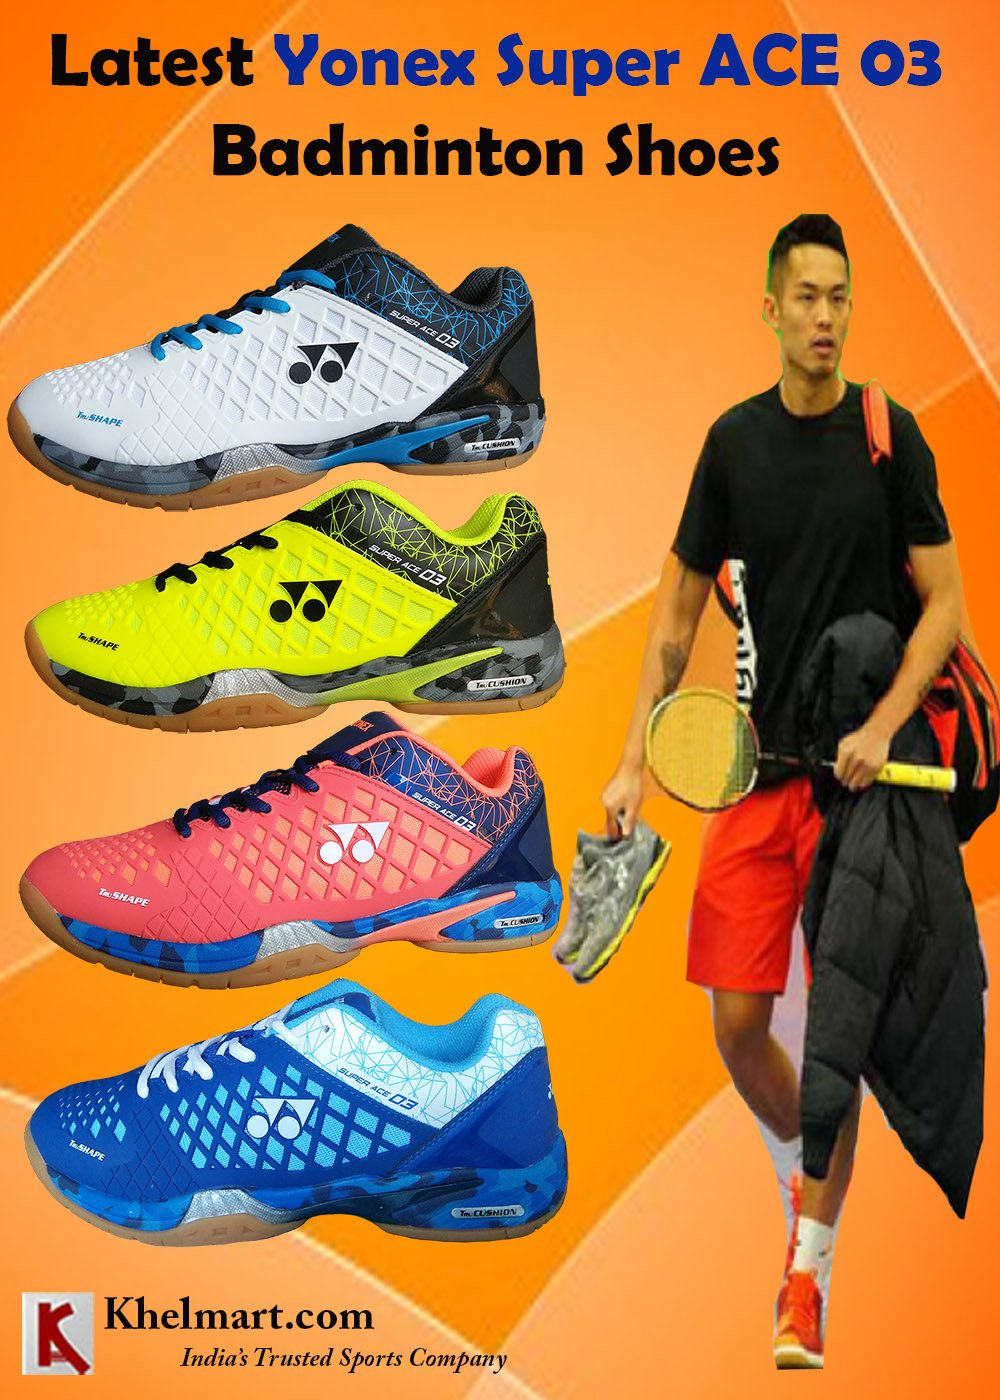 Latest-Yonex-Super-ACE-03-Badminton-Shoes.jpg